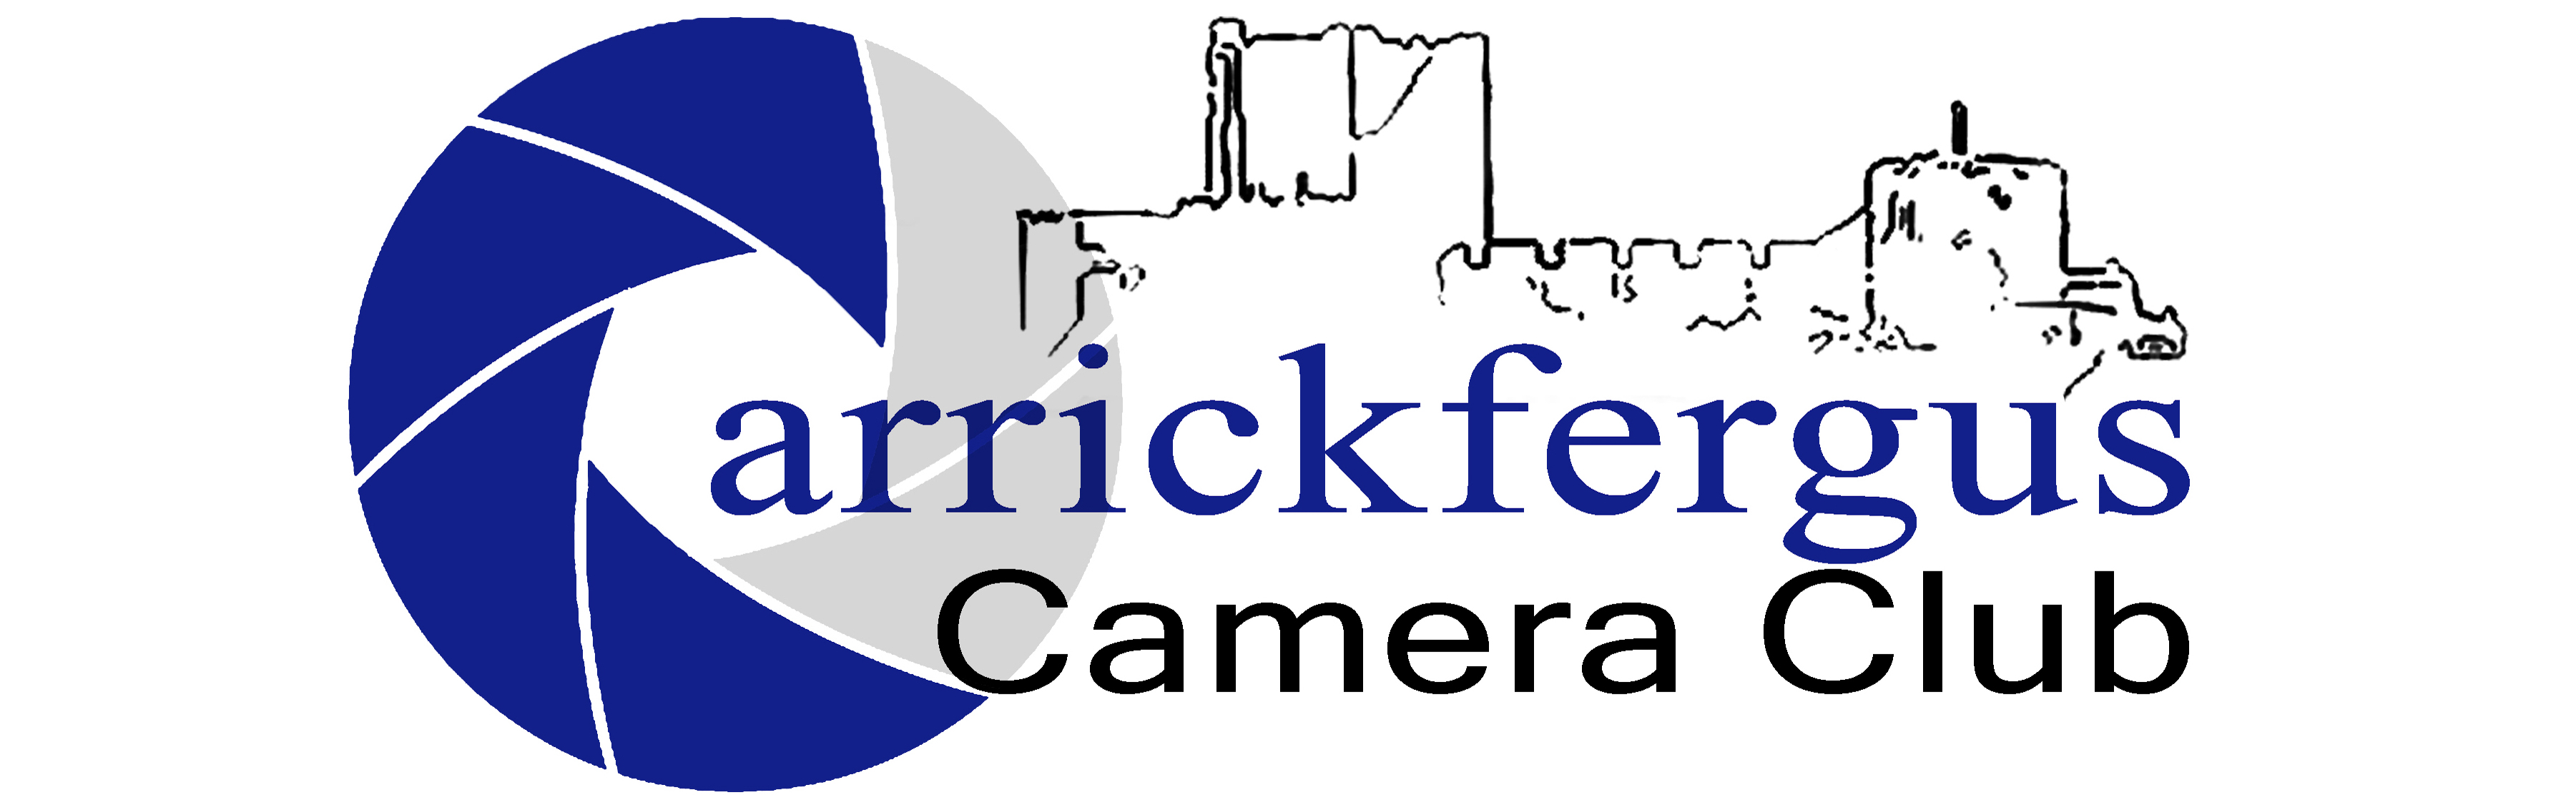 Carrickfergus Camera Club